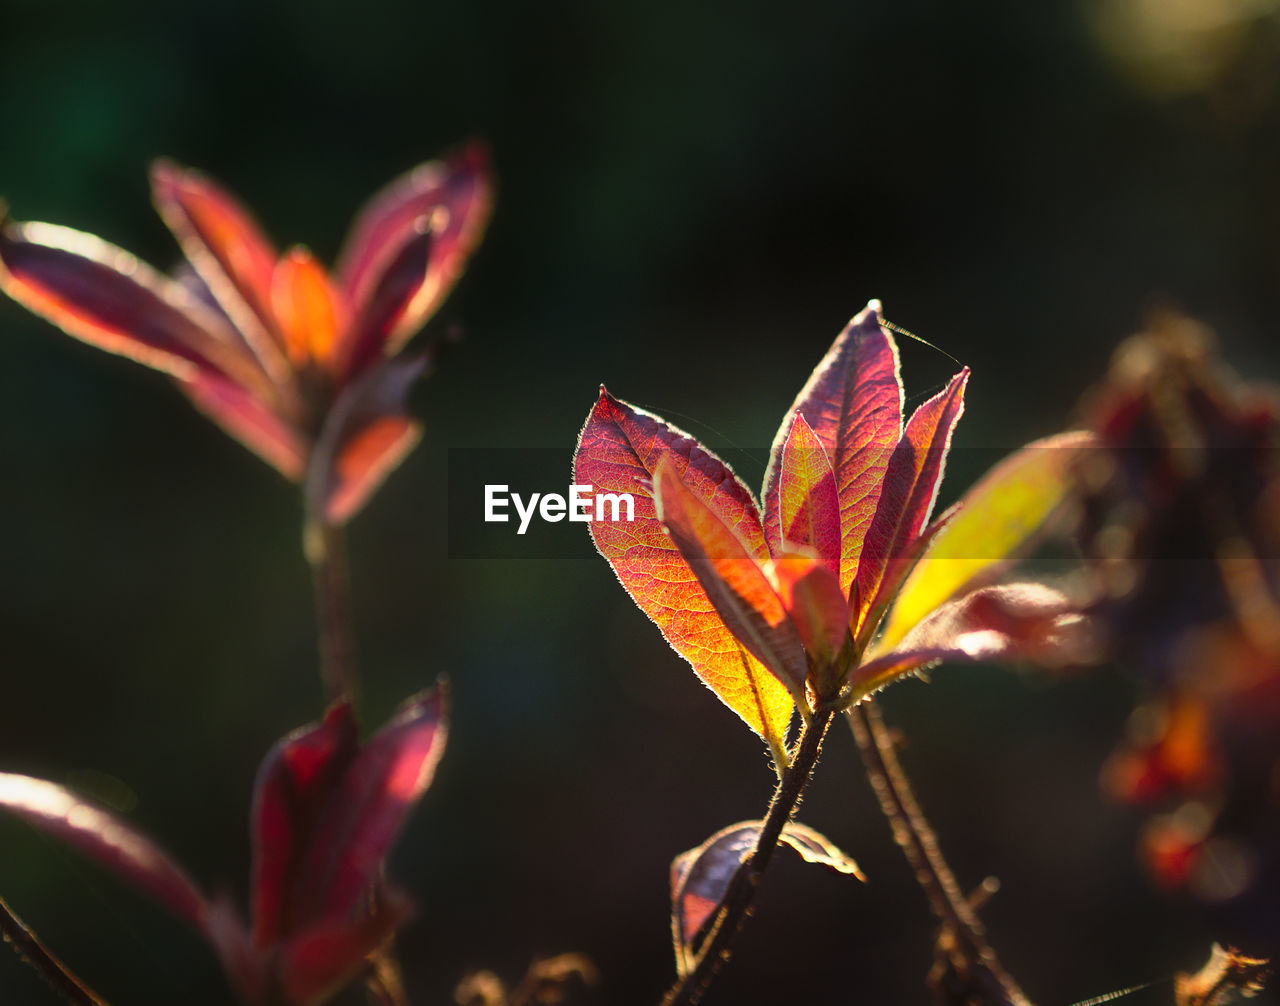 plant part, leaf, close-up, focus on foreground, beauty in nature, plant, growth, orange color, nature, no people, outdoors, autumn, selective focus, day, fragility, vulnerability, change, flower, flowering plant, sunlight, leaves